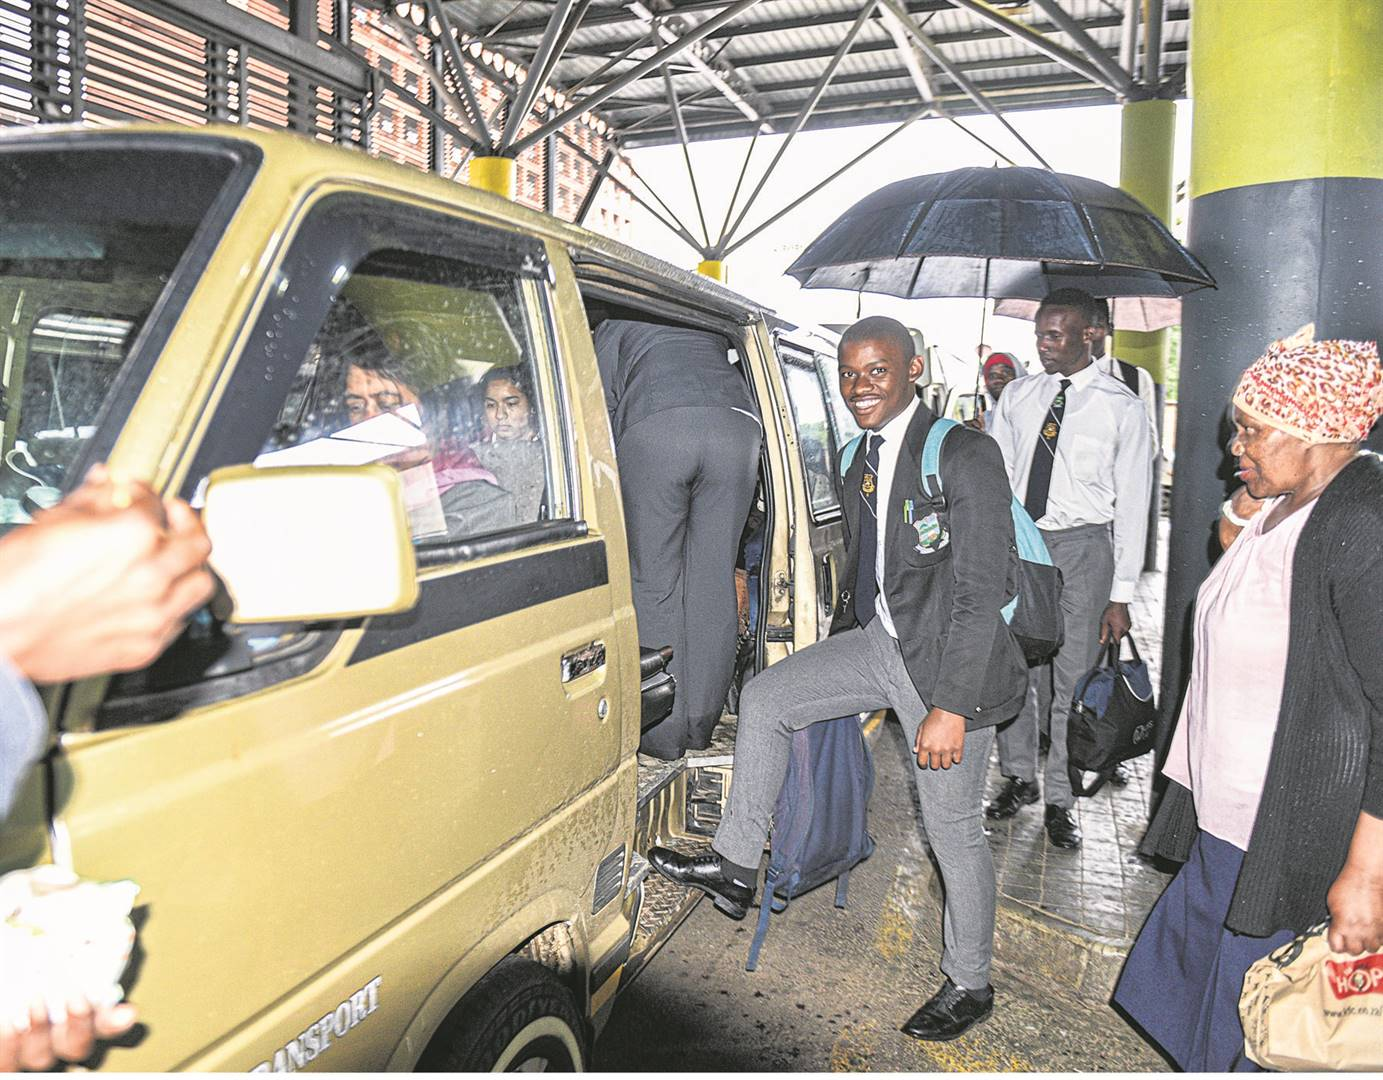 It was business as usual at the city's taxi ranks. Seen boarding a taxi at the Market Square Taxi Rank is Andile Mdlalose from Napierville. Commuters at the rank said they were confident that government would contain the spread of the virus. PHOTO: MOEKETSI MAMANE